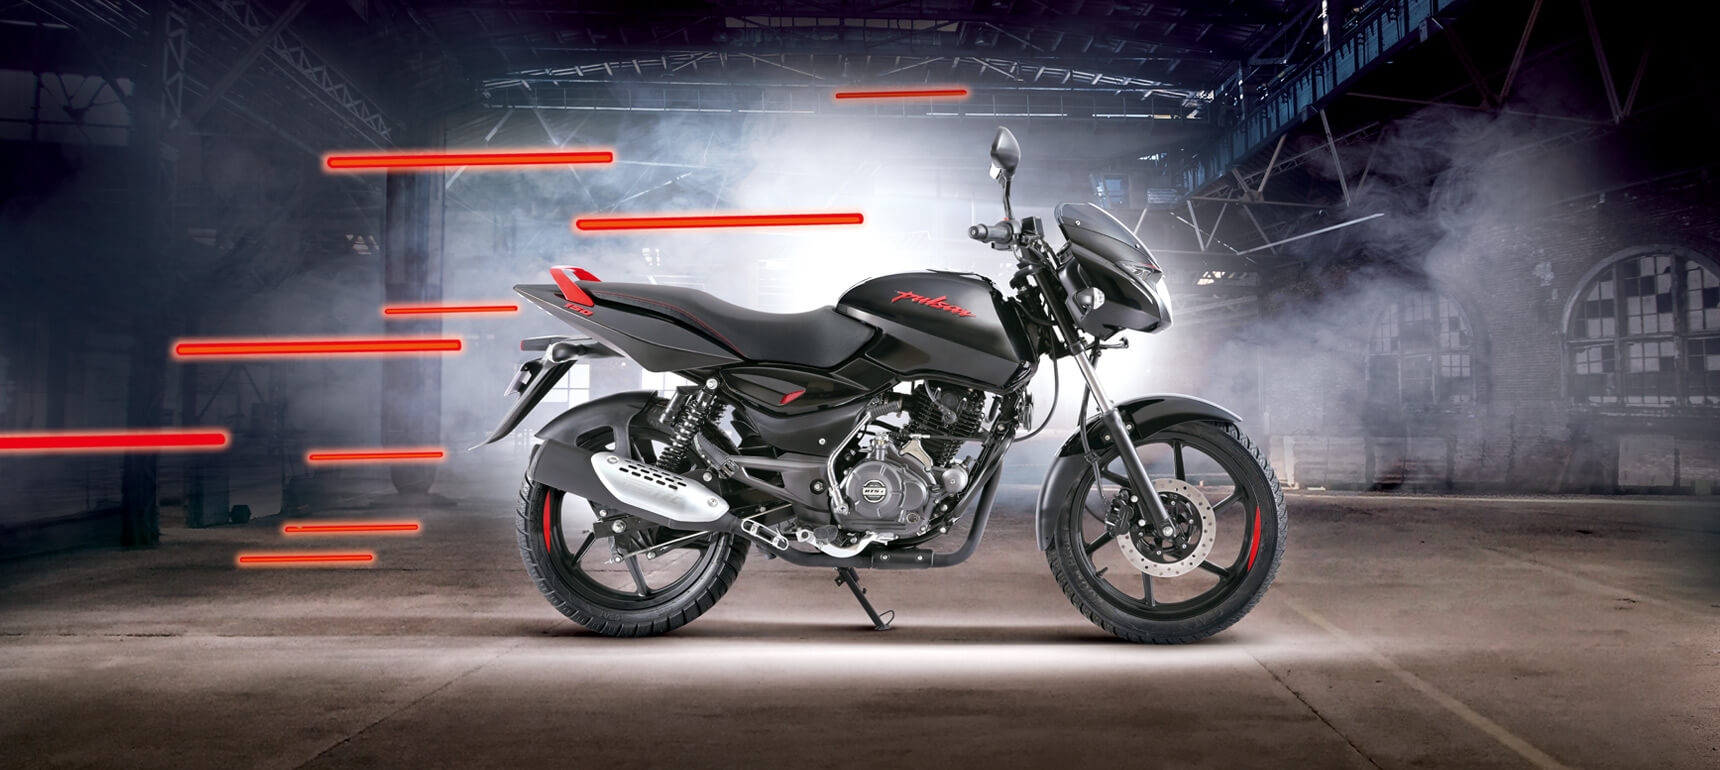 Black and Red Bajaj Pulsar 150cc Neon Motorcycle in a warehouse